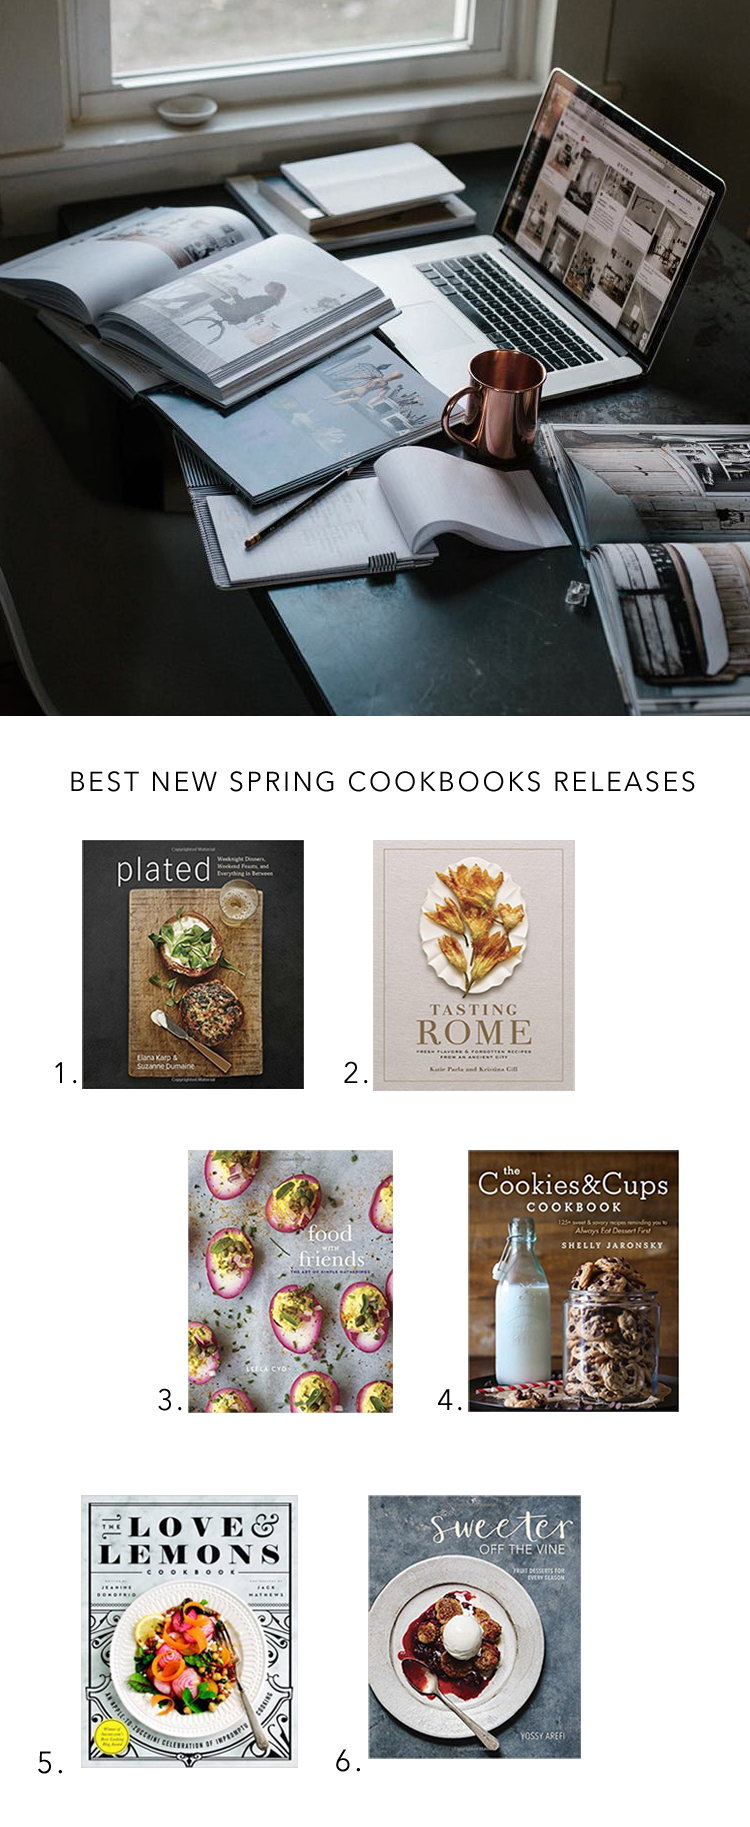 best new cookbooks for spring via @citysage